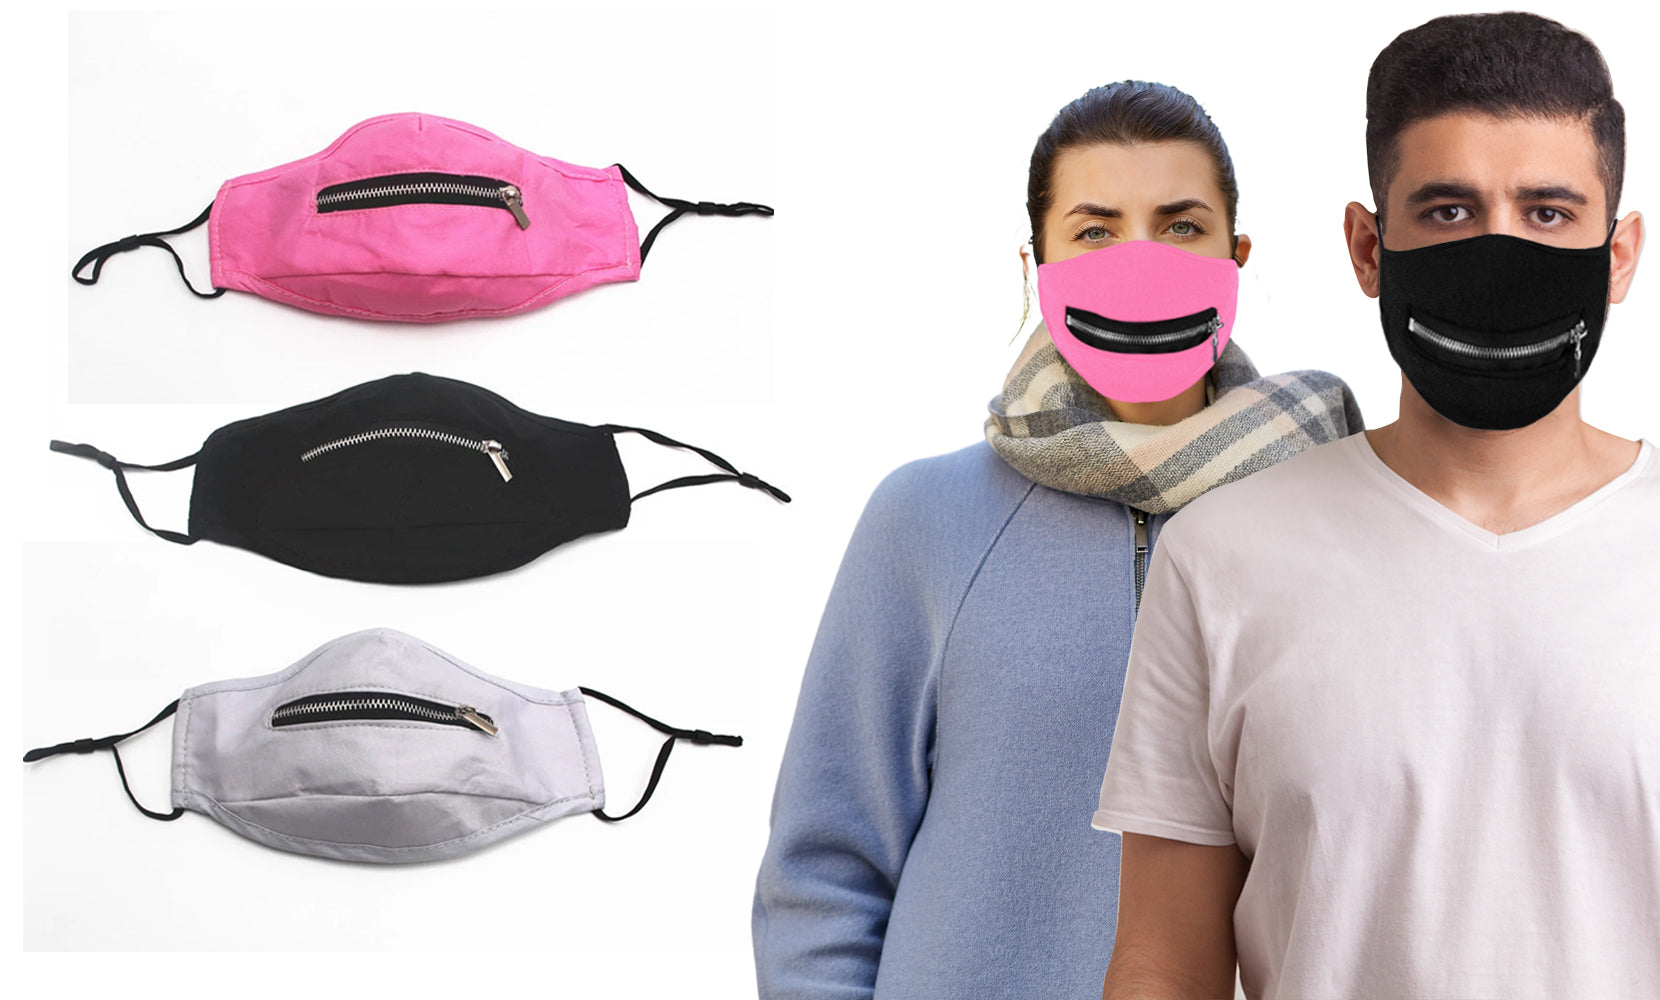 3-Pack: Zipper Reusable Cotton Face Mask for Everyday Use